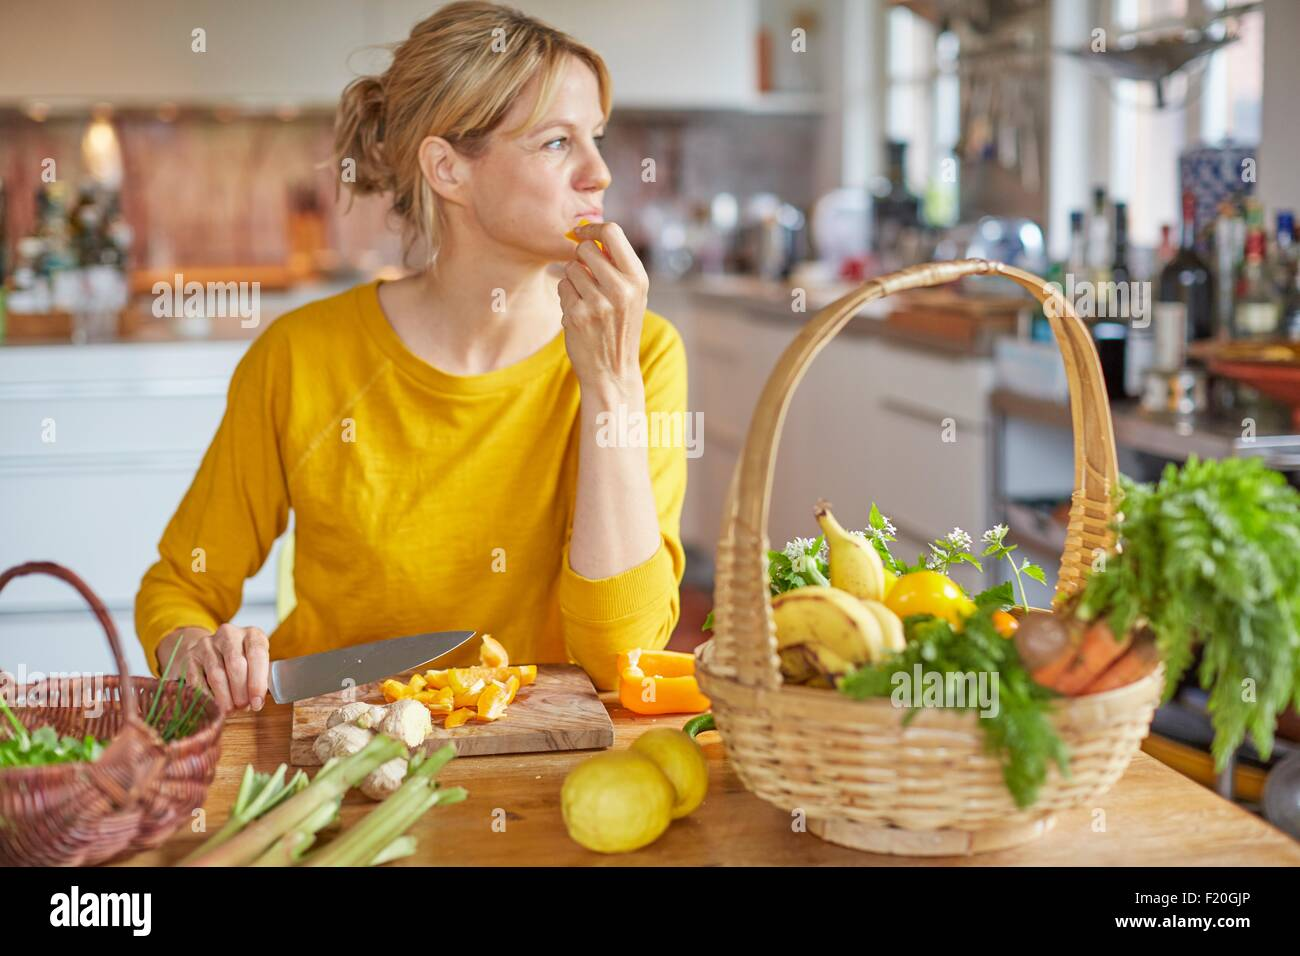 Mature woman sitting at kitchen table, chopping vegetables - Stock Image